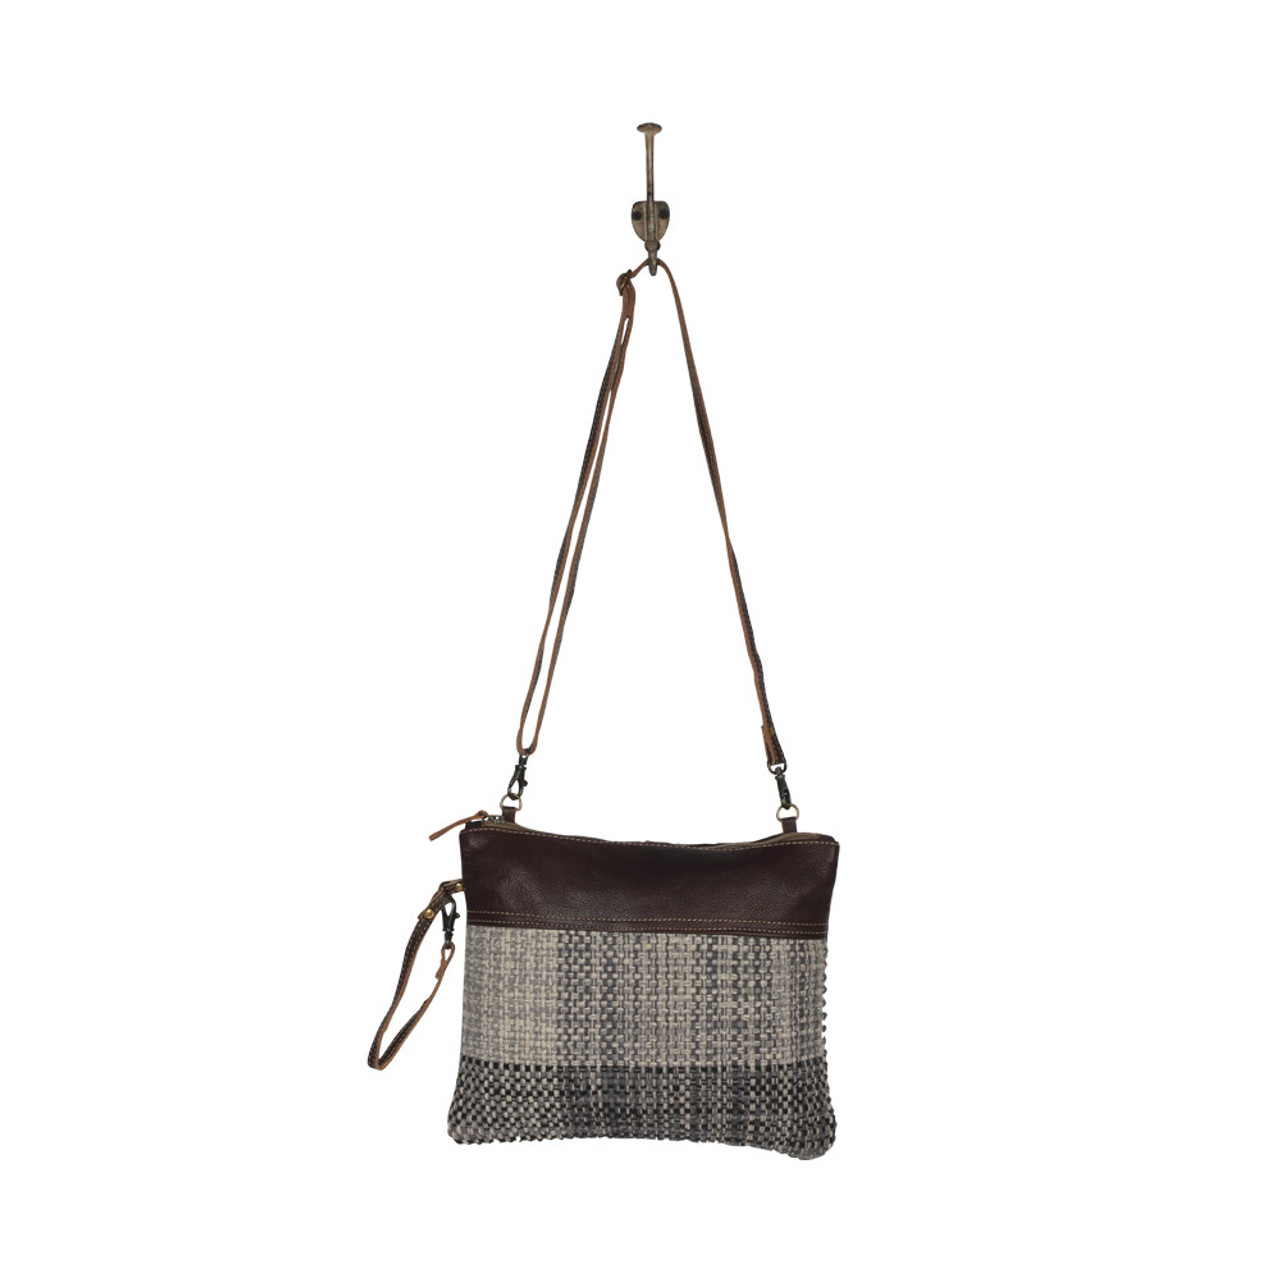 Leather, canvas & rug wristlet or crossbody.  The front has a neutral woven pattern with main zipper closure and the back is solid canvas.   No interior pockets.